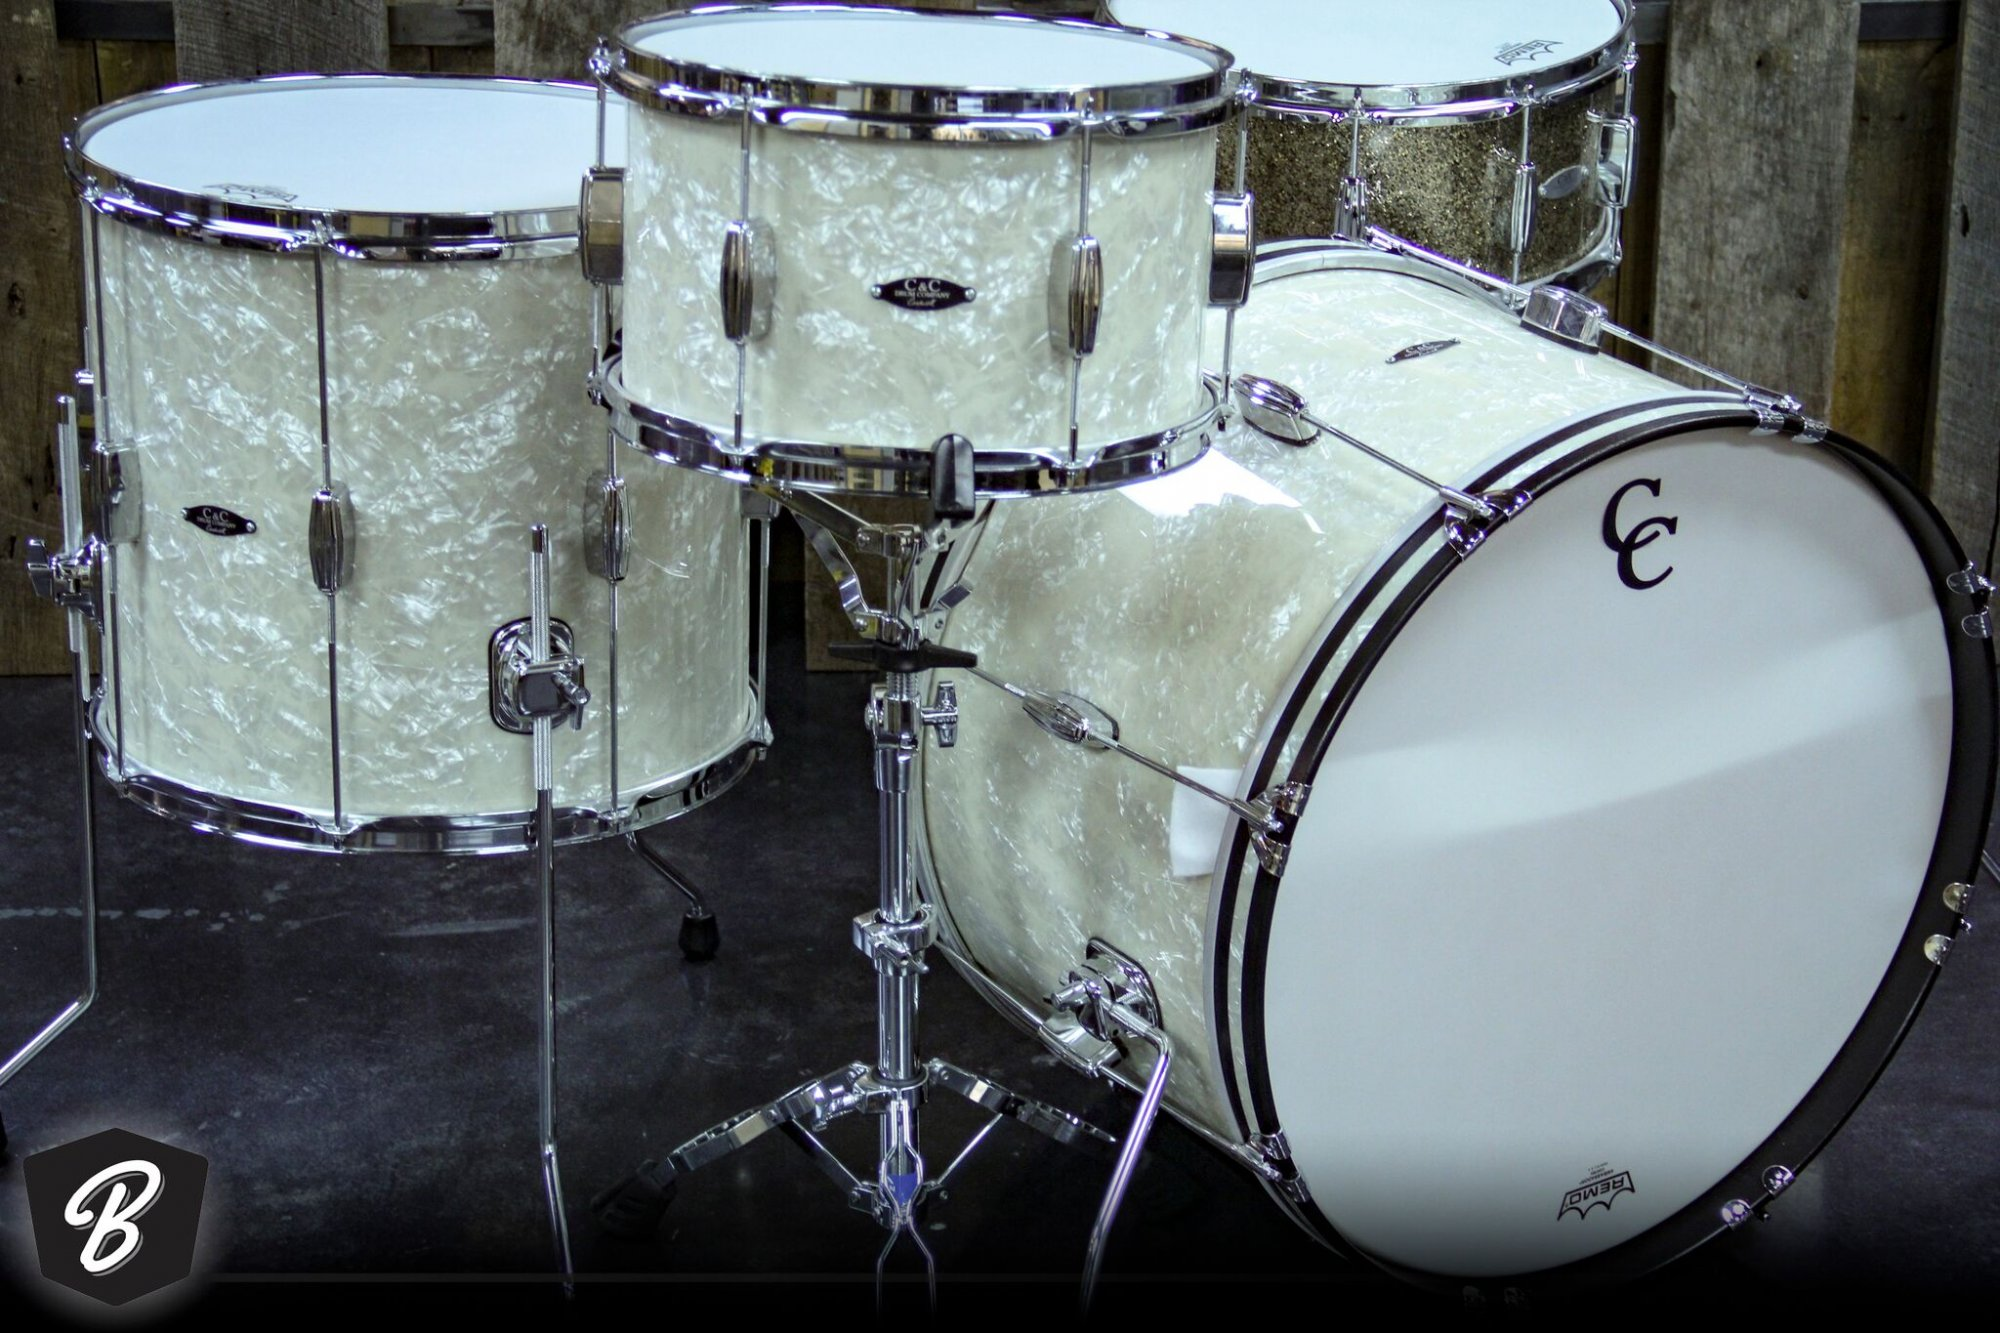 C&C Drum Company Player Date II Big Beat Series kit in Aged Marine Pearl